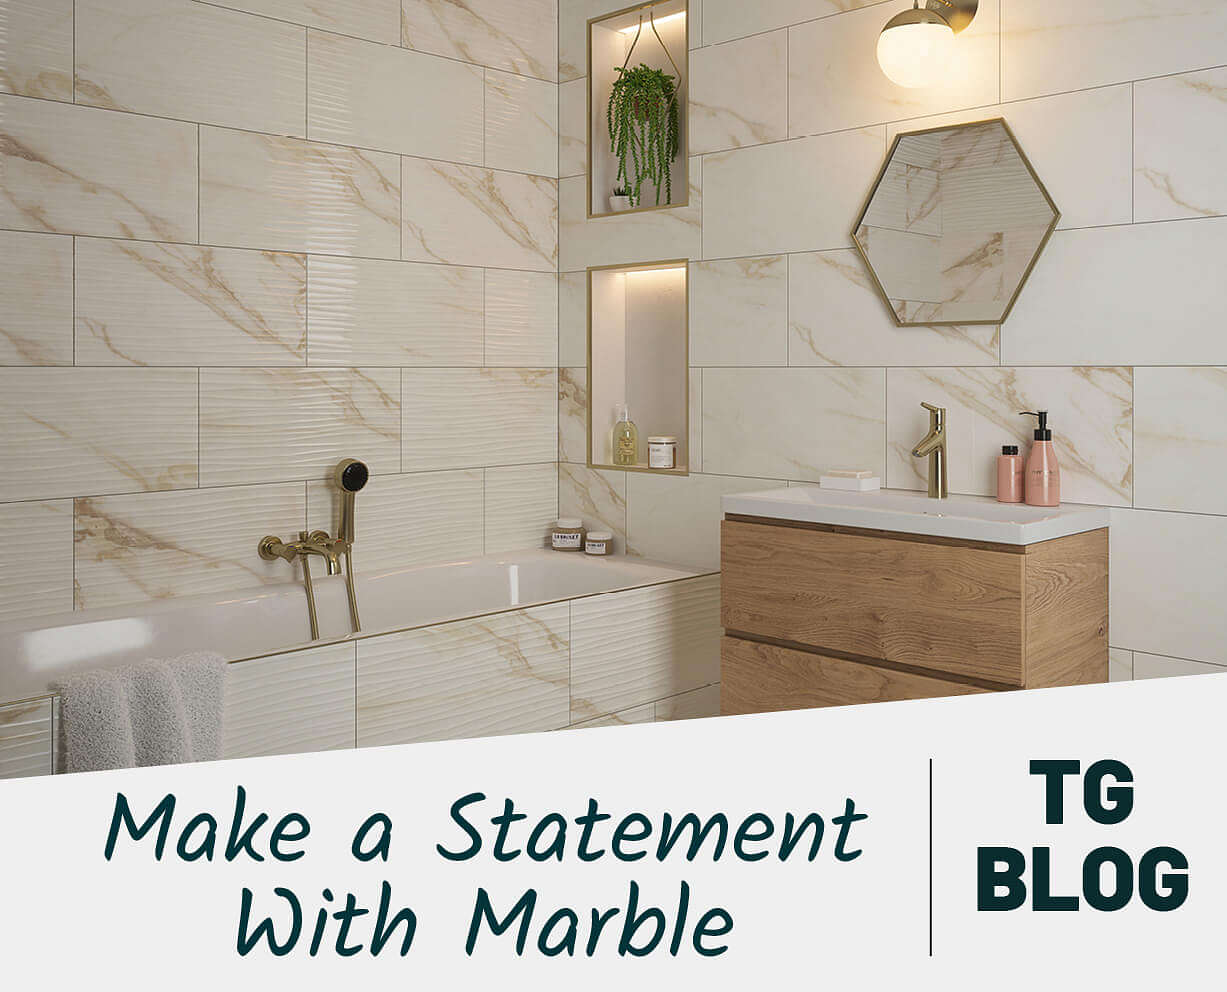 Make a Statement with Marble Effect Tiles